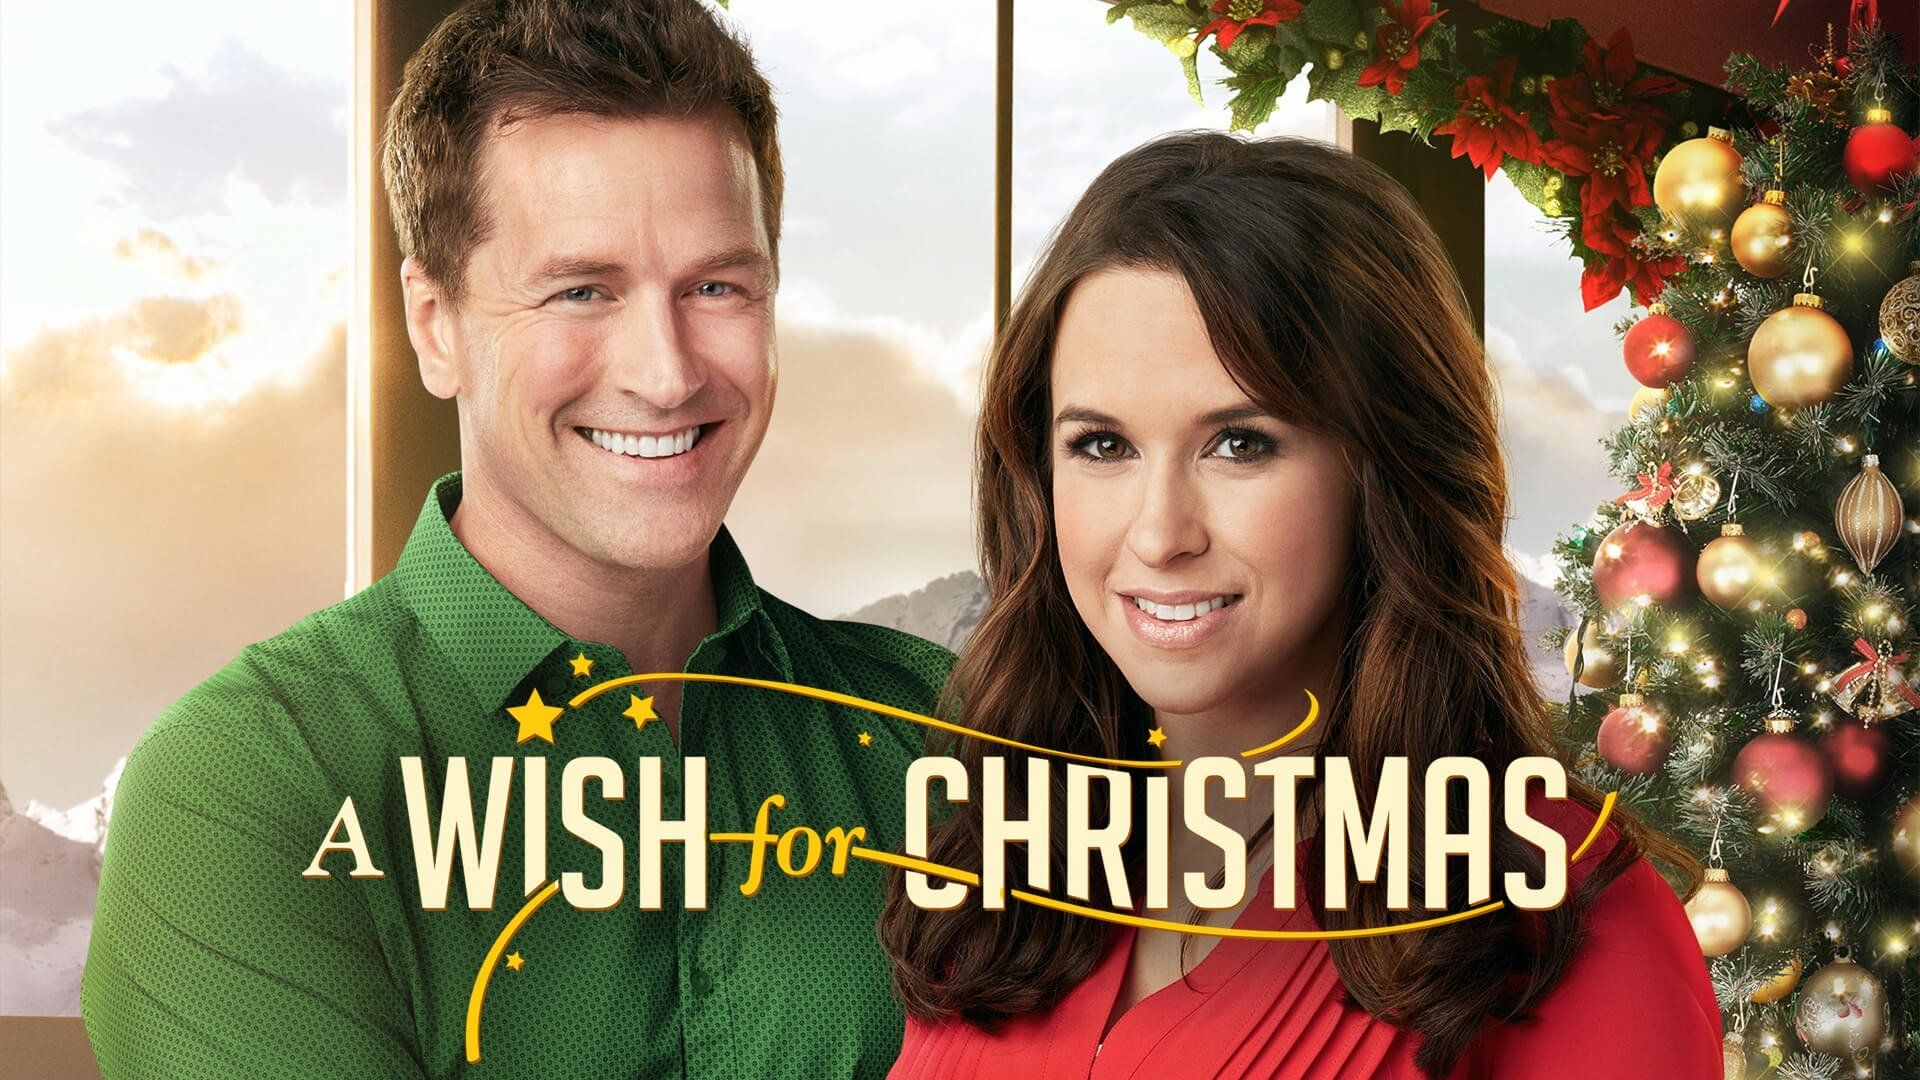 Movie Reviews A Wish For Christmas 2016 Gonzo Okanagan Online News Music Technology Sports Film Arts Entertainment Culture Wine Dine Life Family Christmas Movies Romantic Comedy Movies Comedy Movies 2016